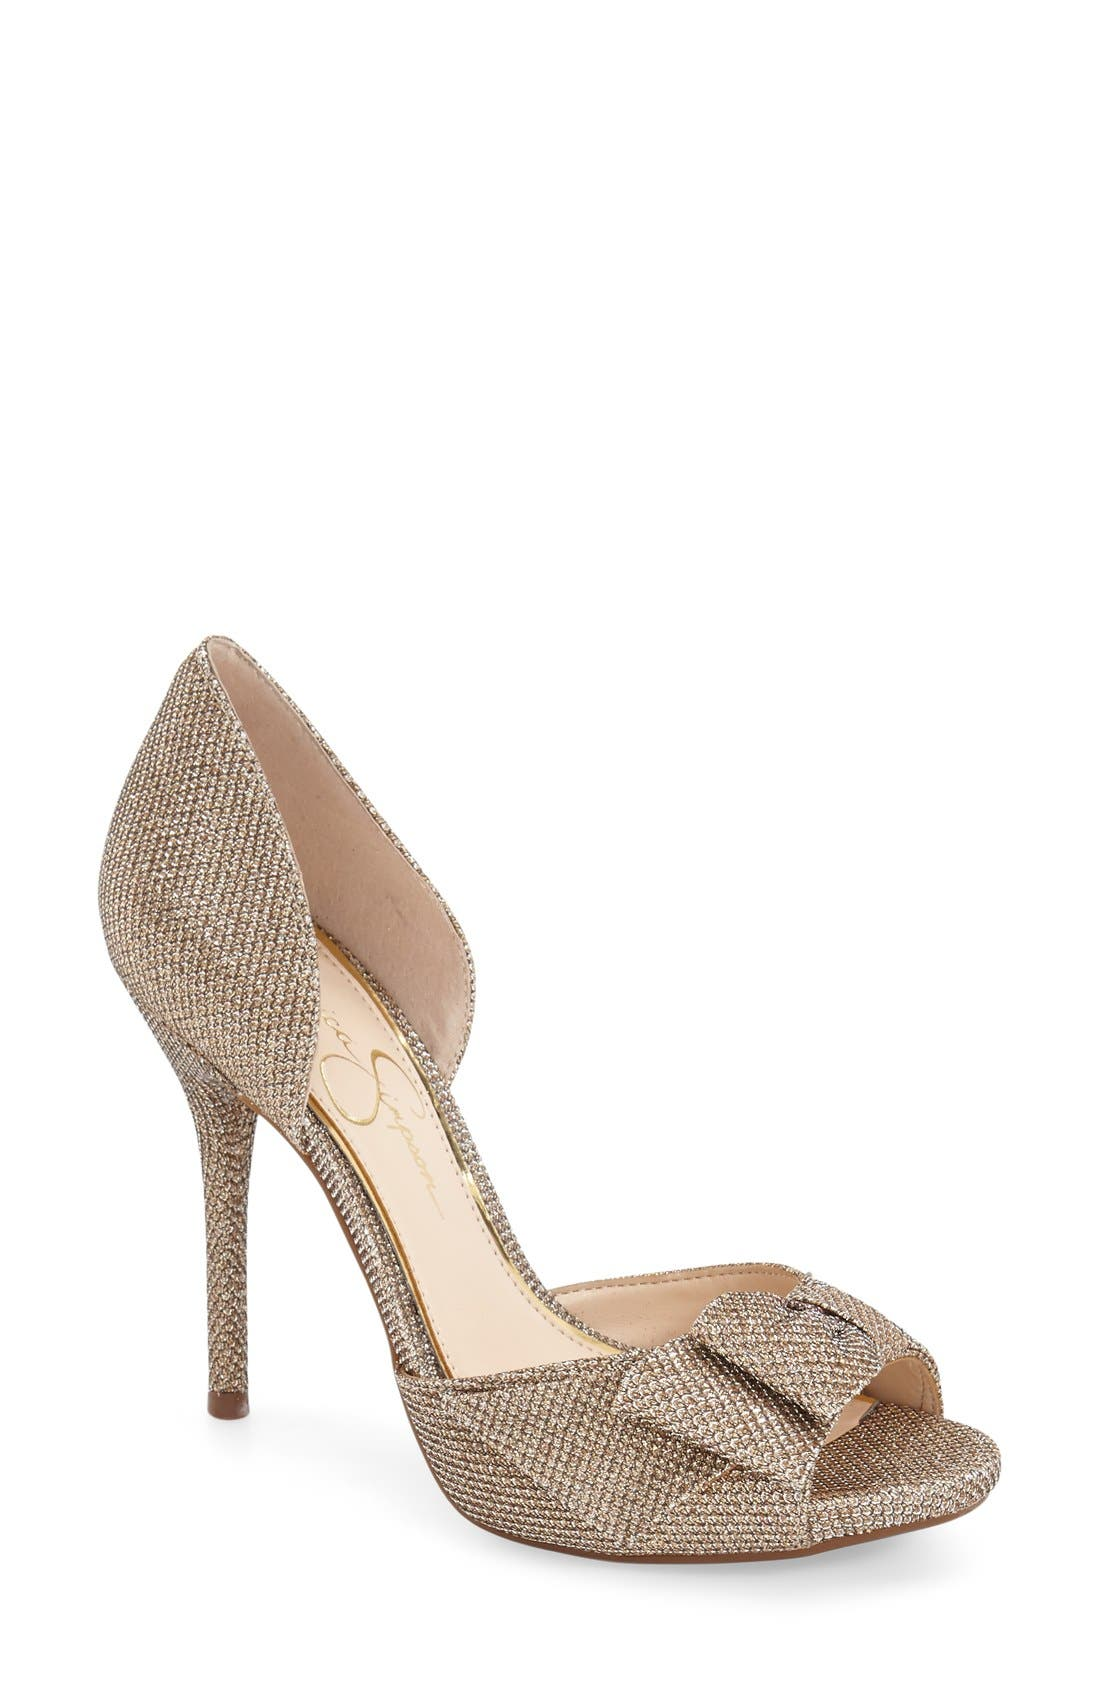 Alternate Image 1 Selected - Jessica Simpson 'Bealls' Bow Top Peep Toe Pump (Women)